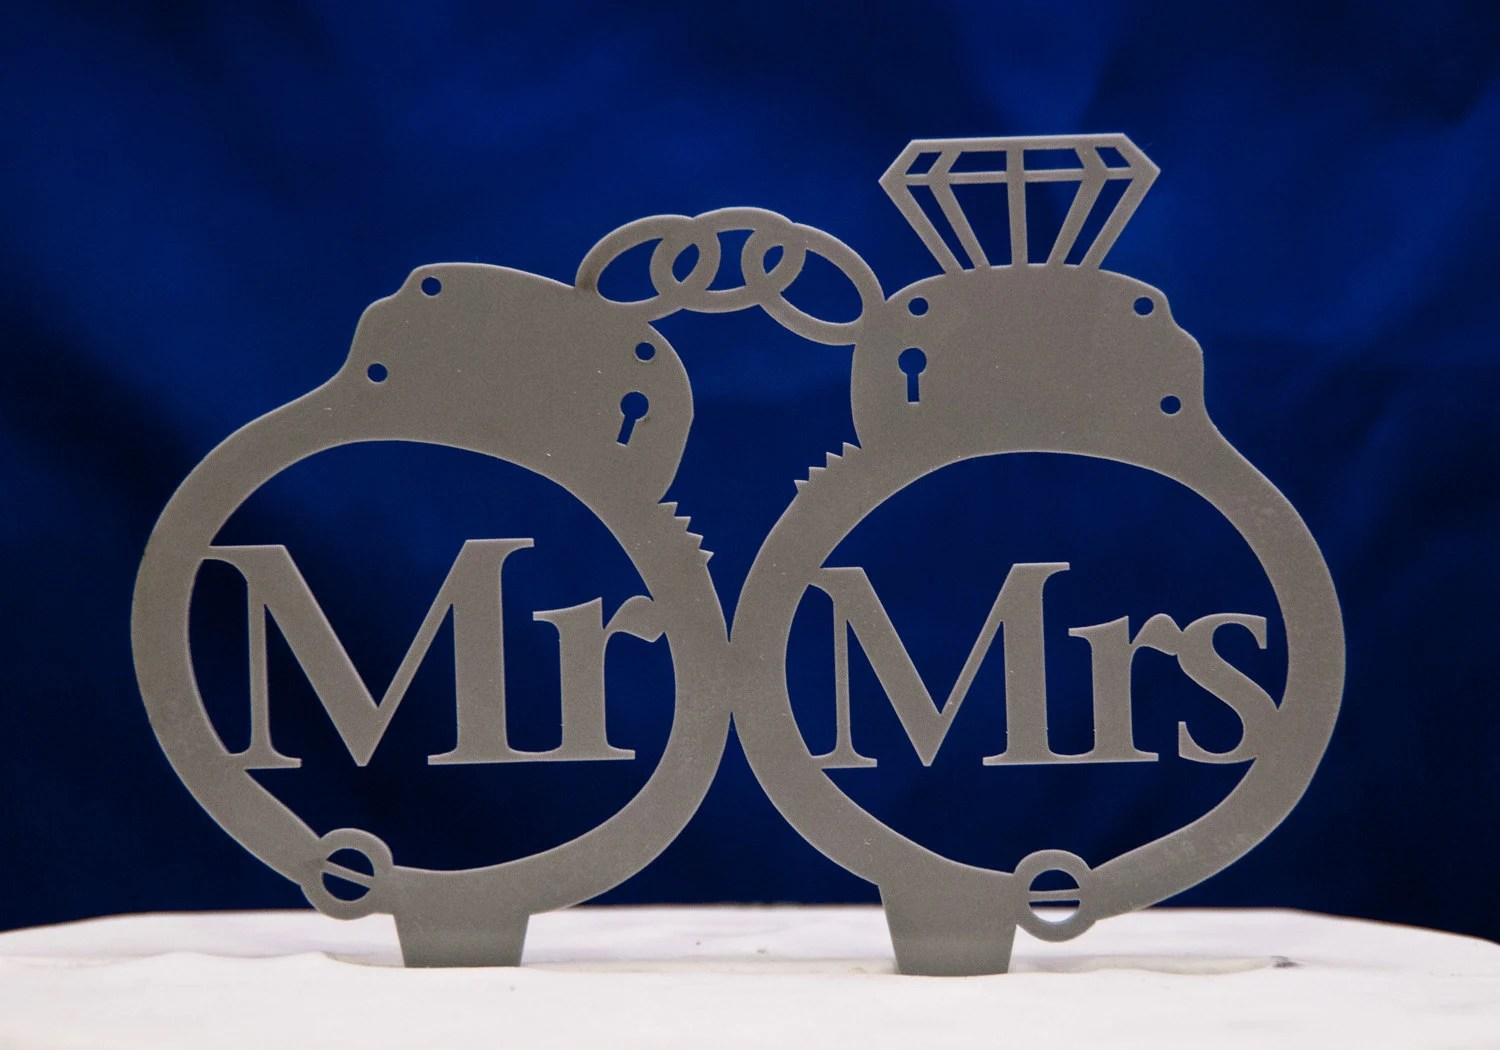 police wedding police wedding rings Handcuffs wedding cake topper Mr and Mrs inside handcuffs with diamond wedding cake topper police cake topper